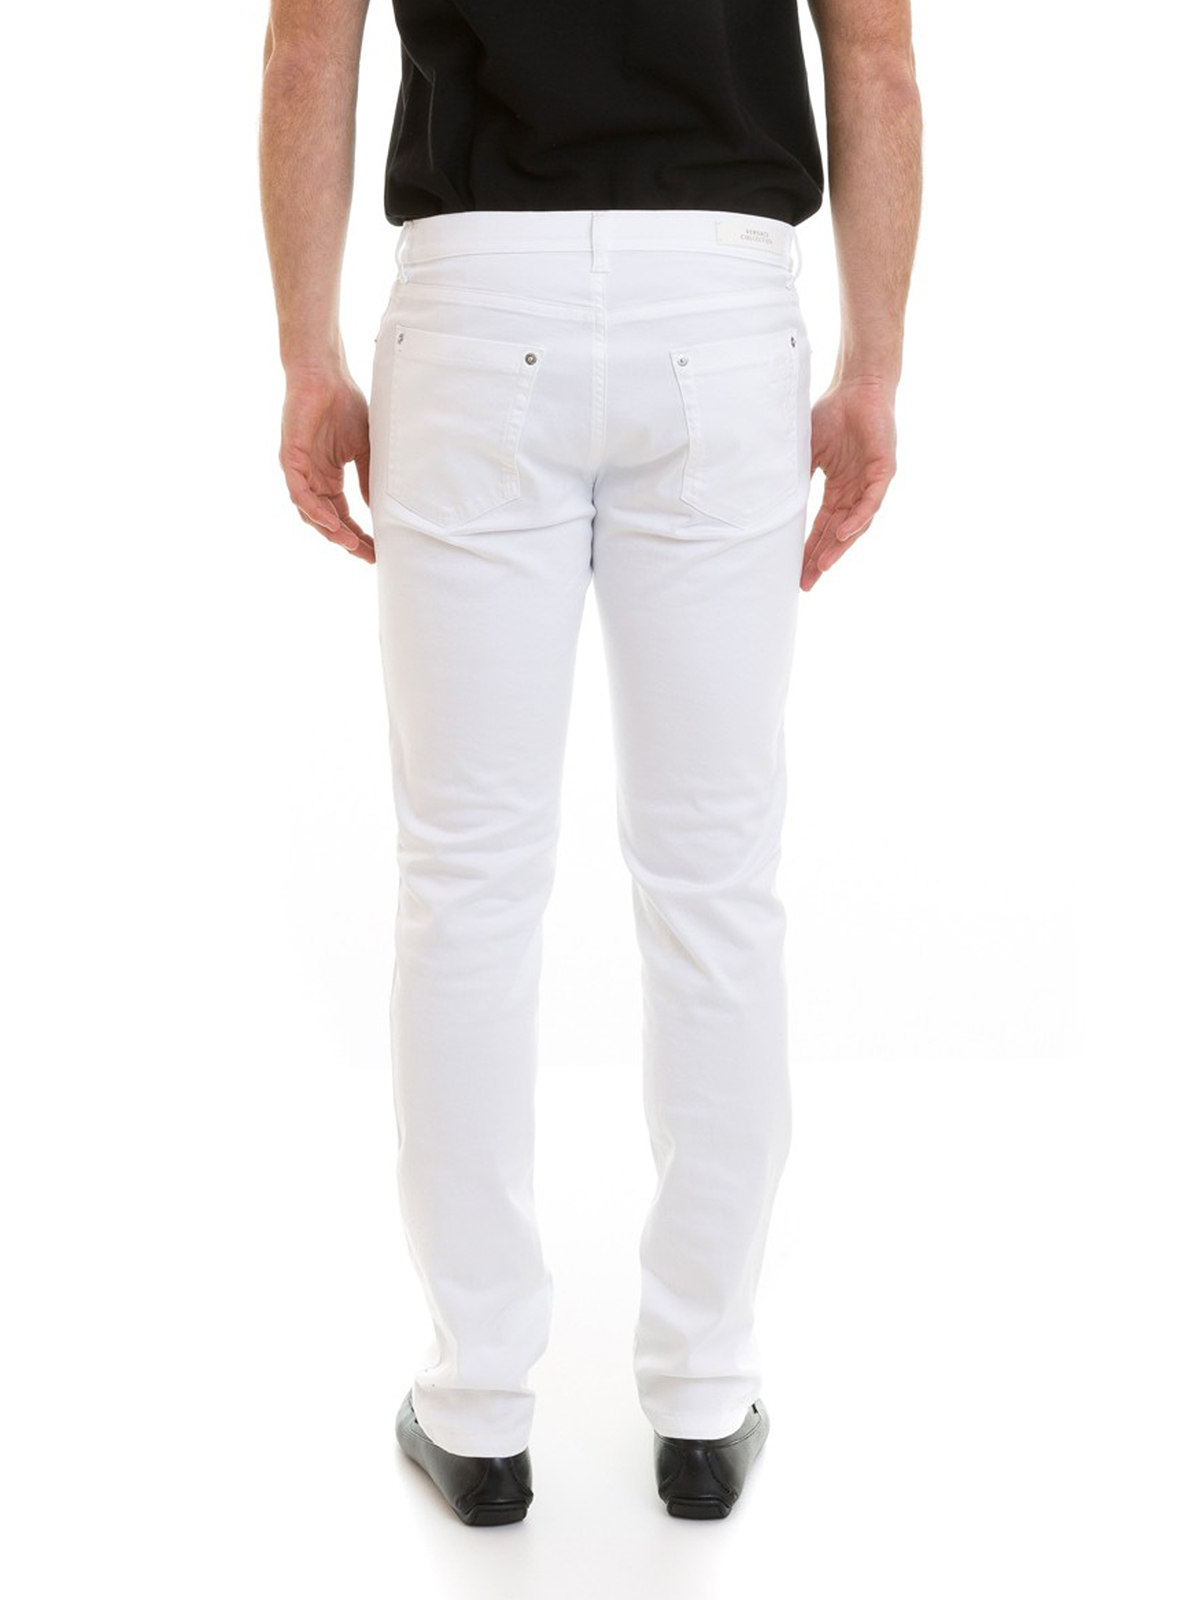 fc2a142d57 Versace Collection - Tonal embroidered logo white jeans - straight ...